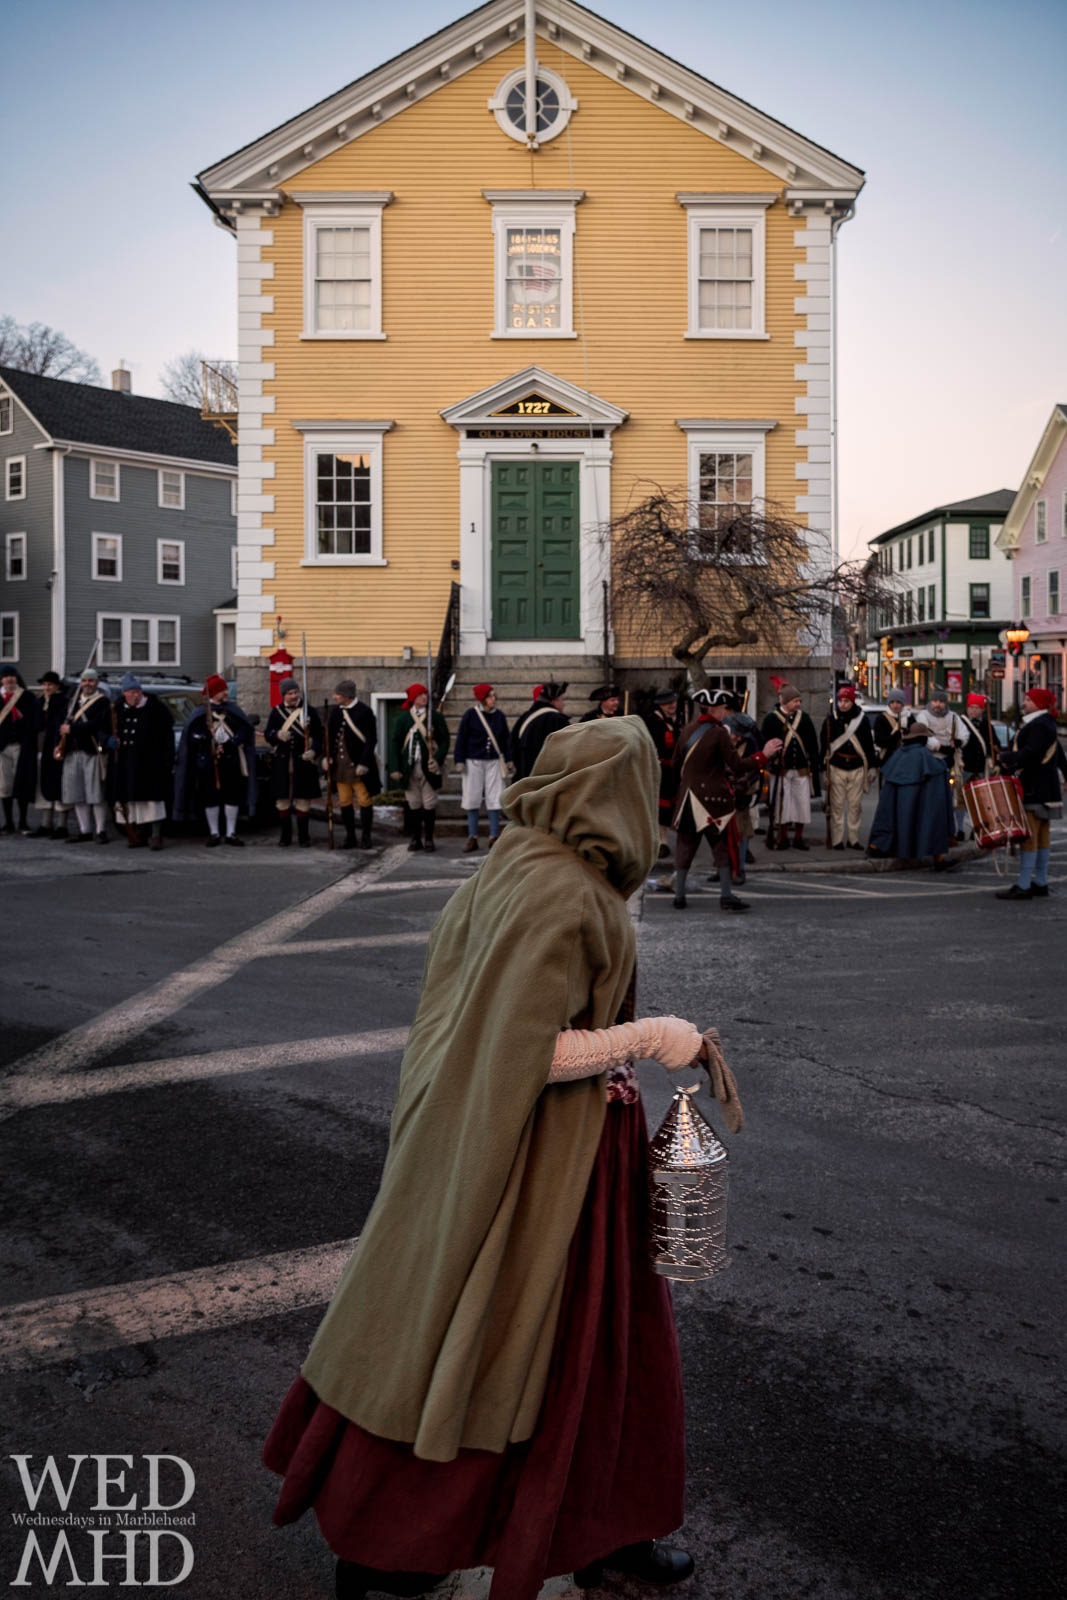 A hooded woman passes by as Glover's Regiment gathers at Old Town House for the annual lantern walk